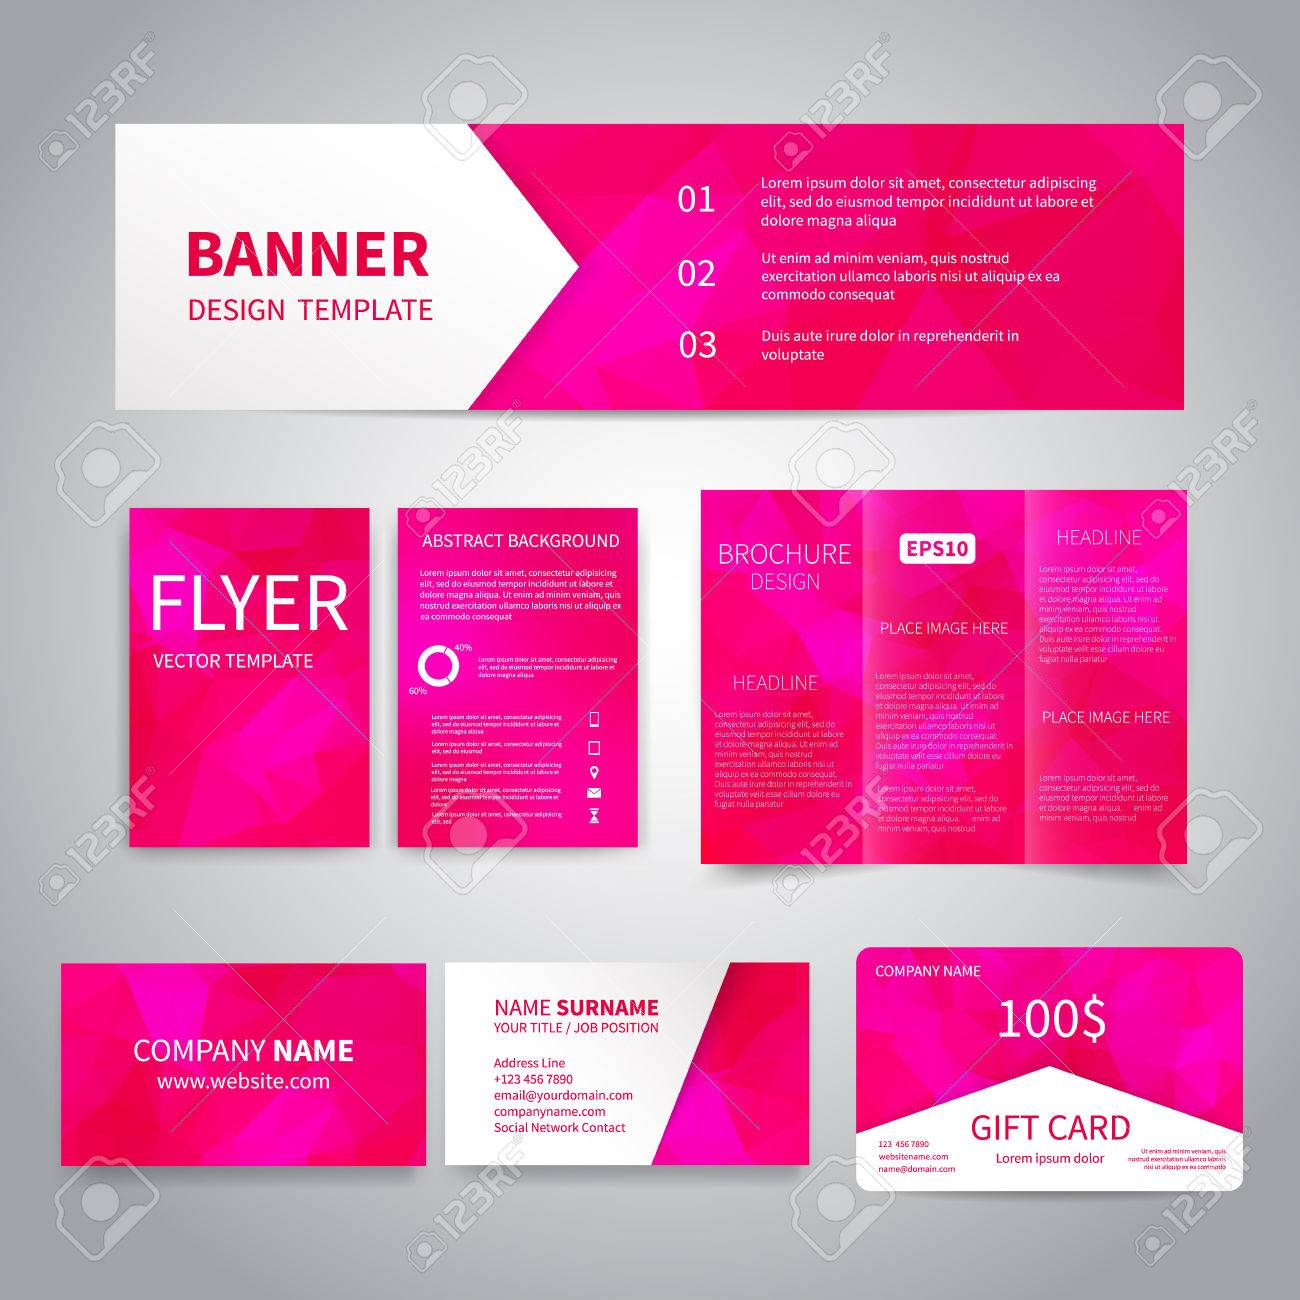 Banner flyers brochure business cards gift card design templates banco de imagens banner flyers brochure business cards gift card design templates set with geometric triangular pink background reheart Images